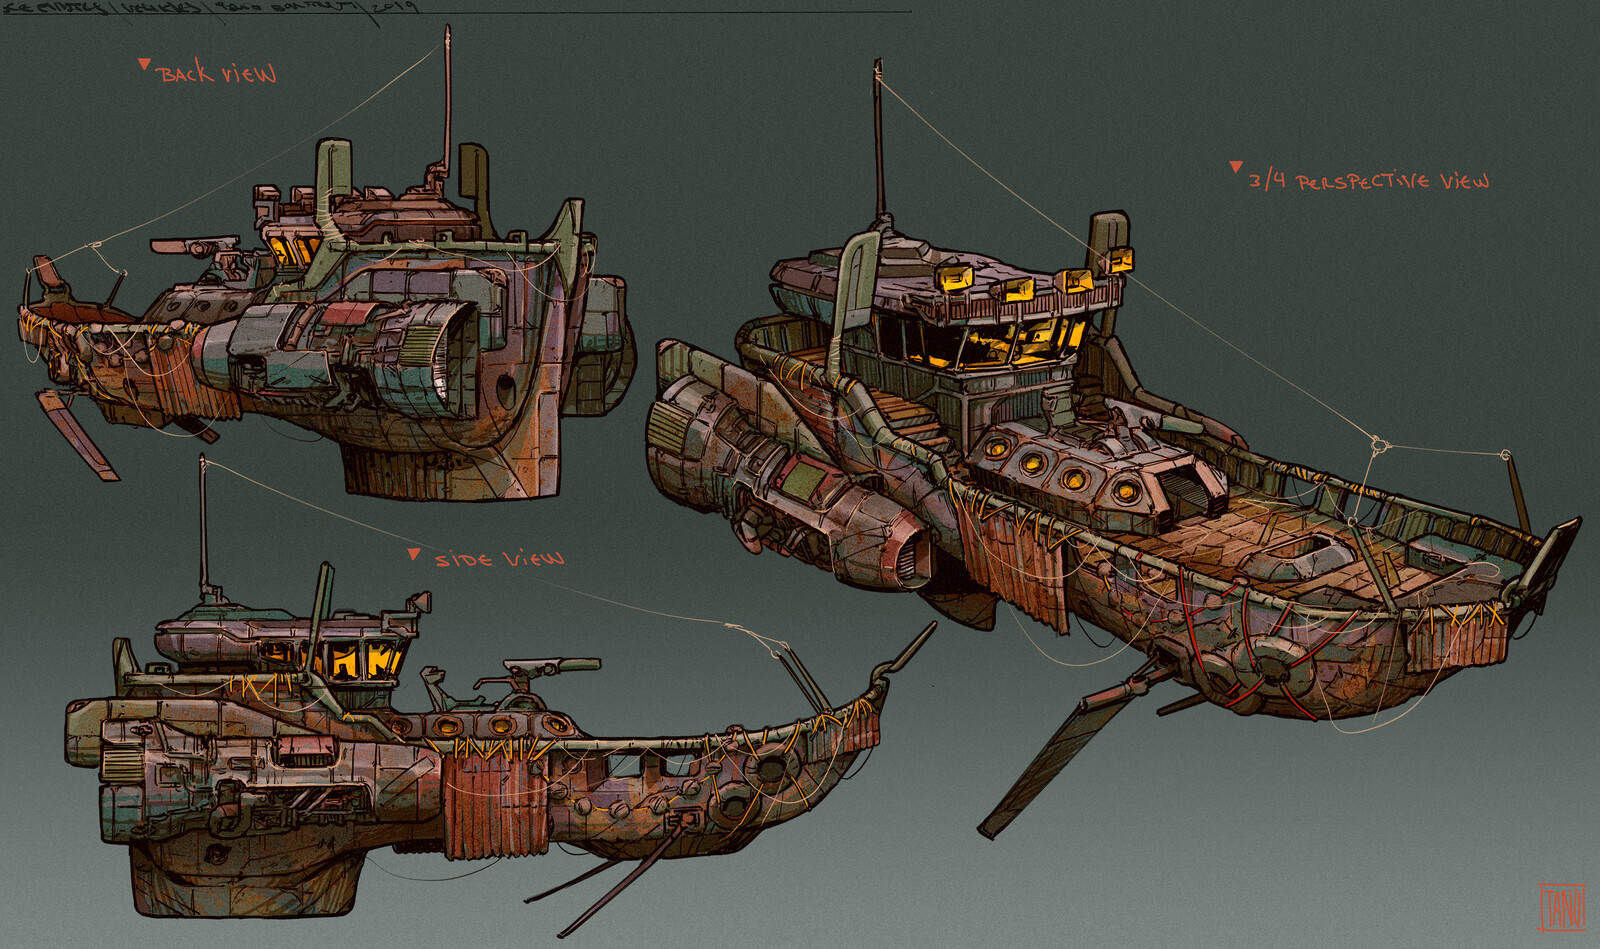 Tugboat concept art